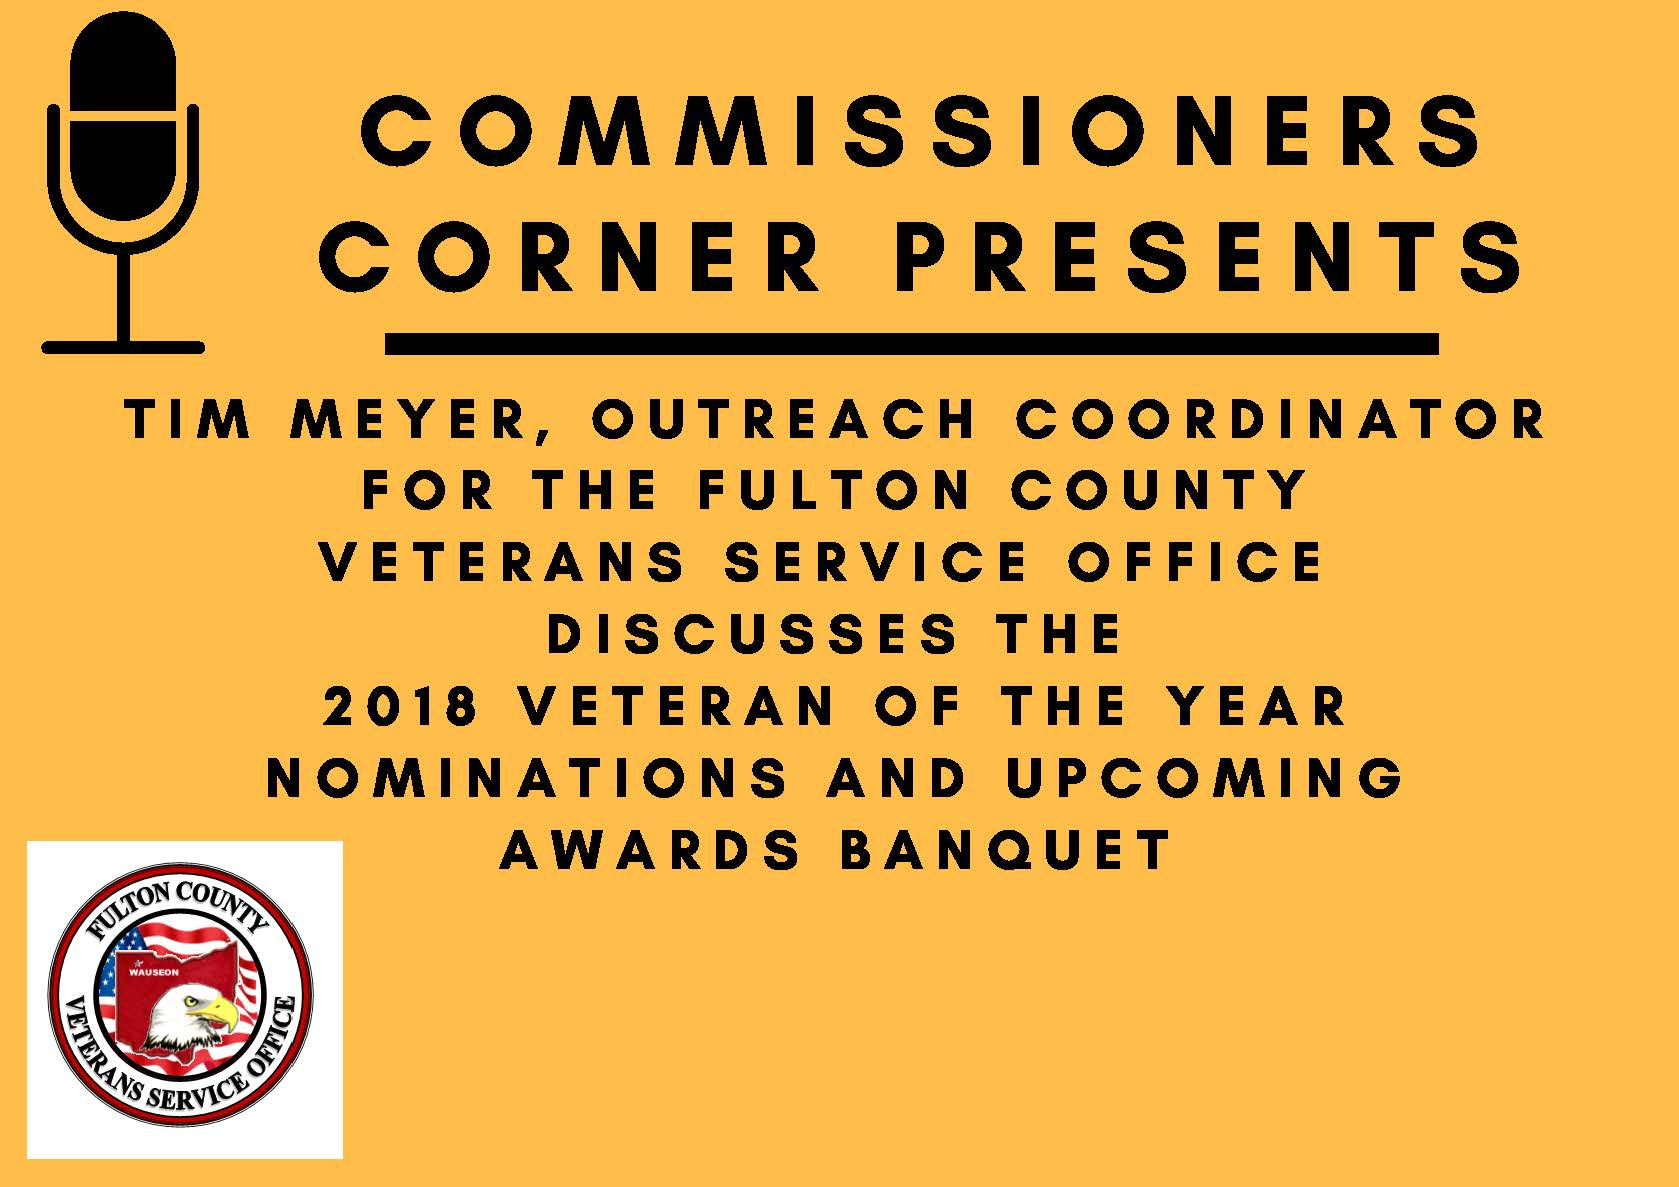 Commissioners Corner Veteran of the Year Banquet Announcement